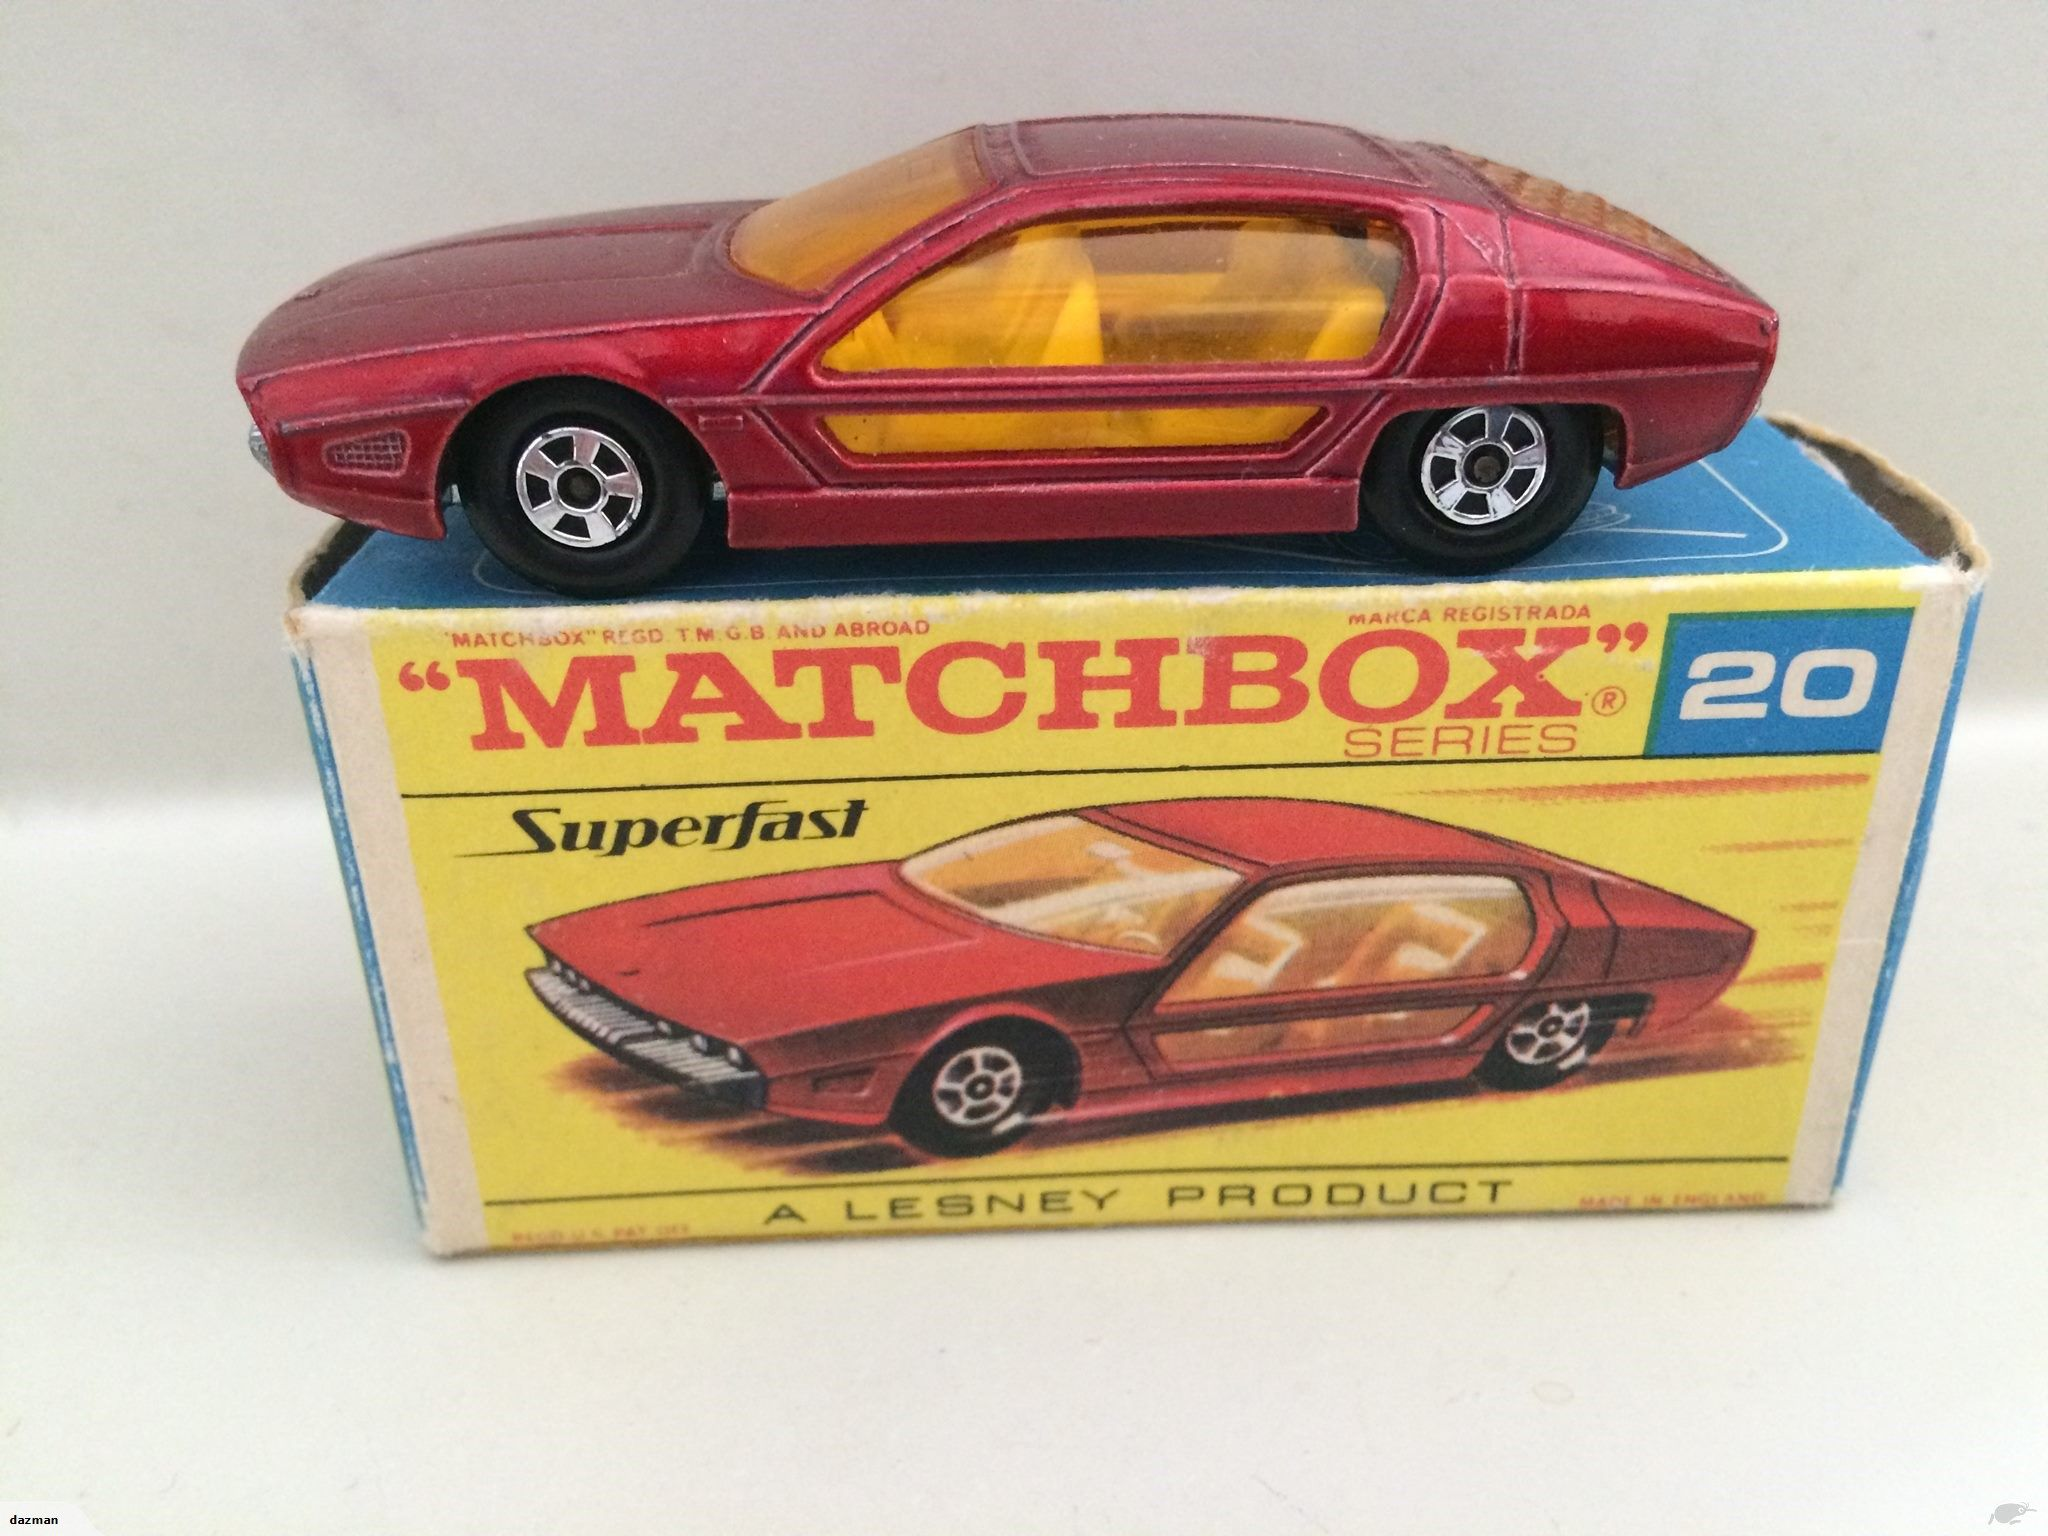 1969 lamborghini marzal for sale on trade me new zealand s auction and classifieds website